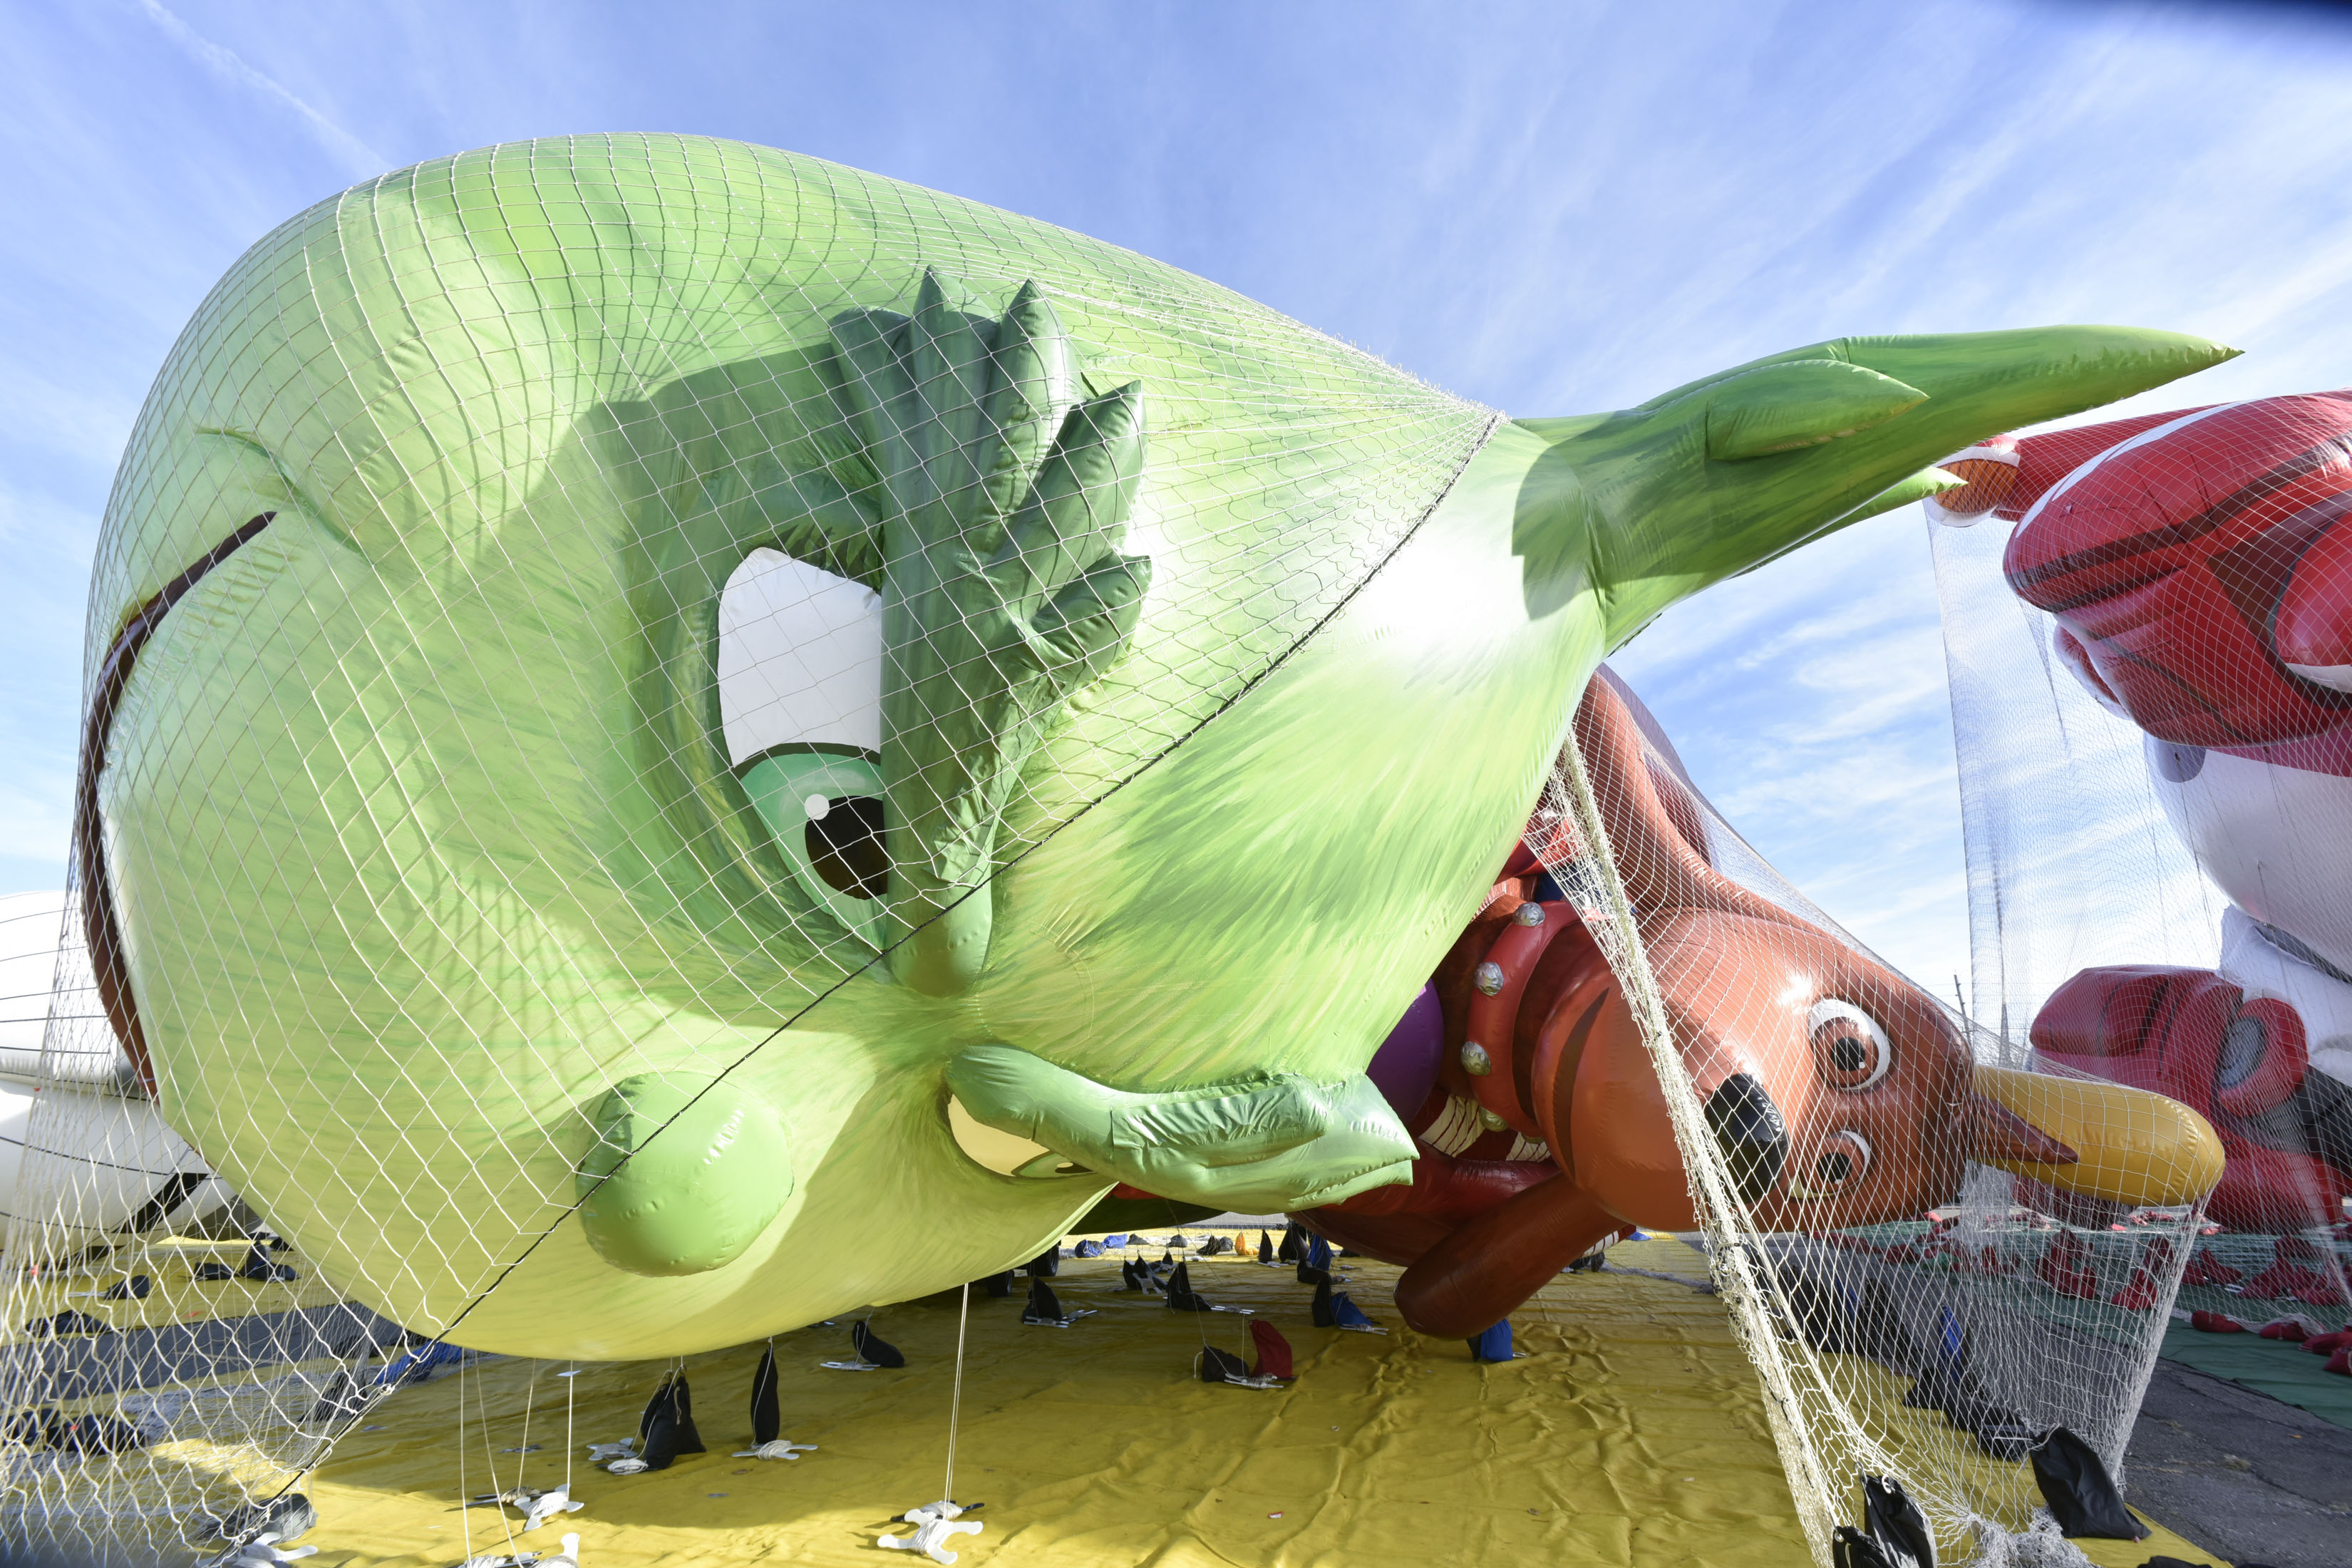 Macy's Debuts New Giant Character Balloons For The 91st Annual Macy's Day Parade